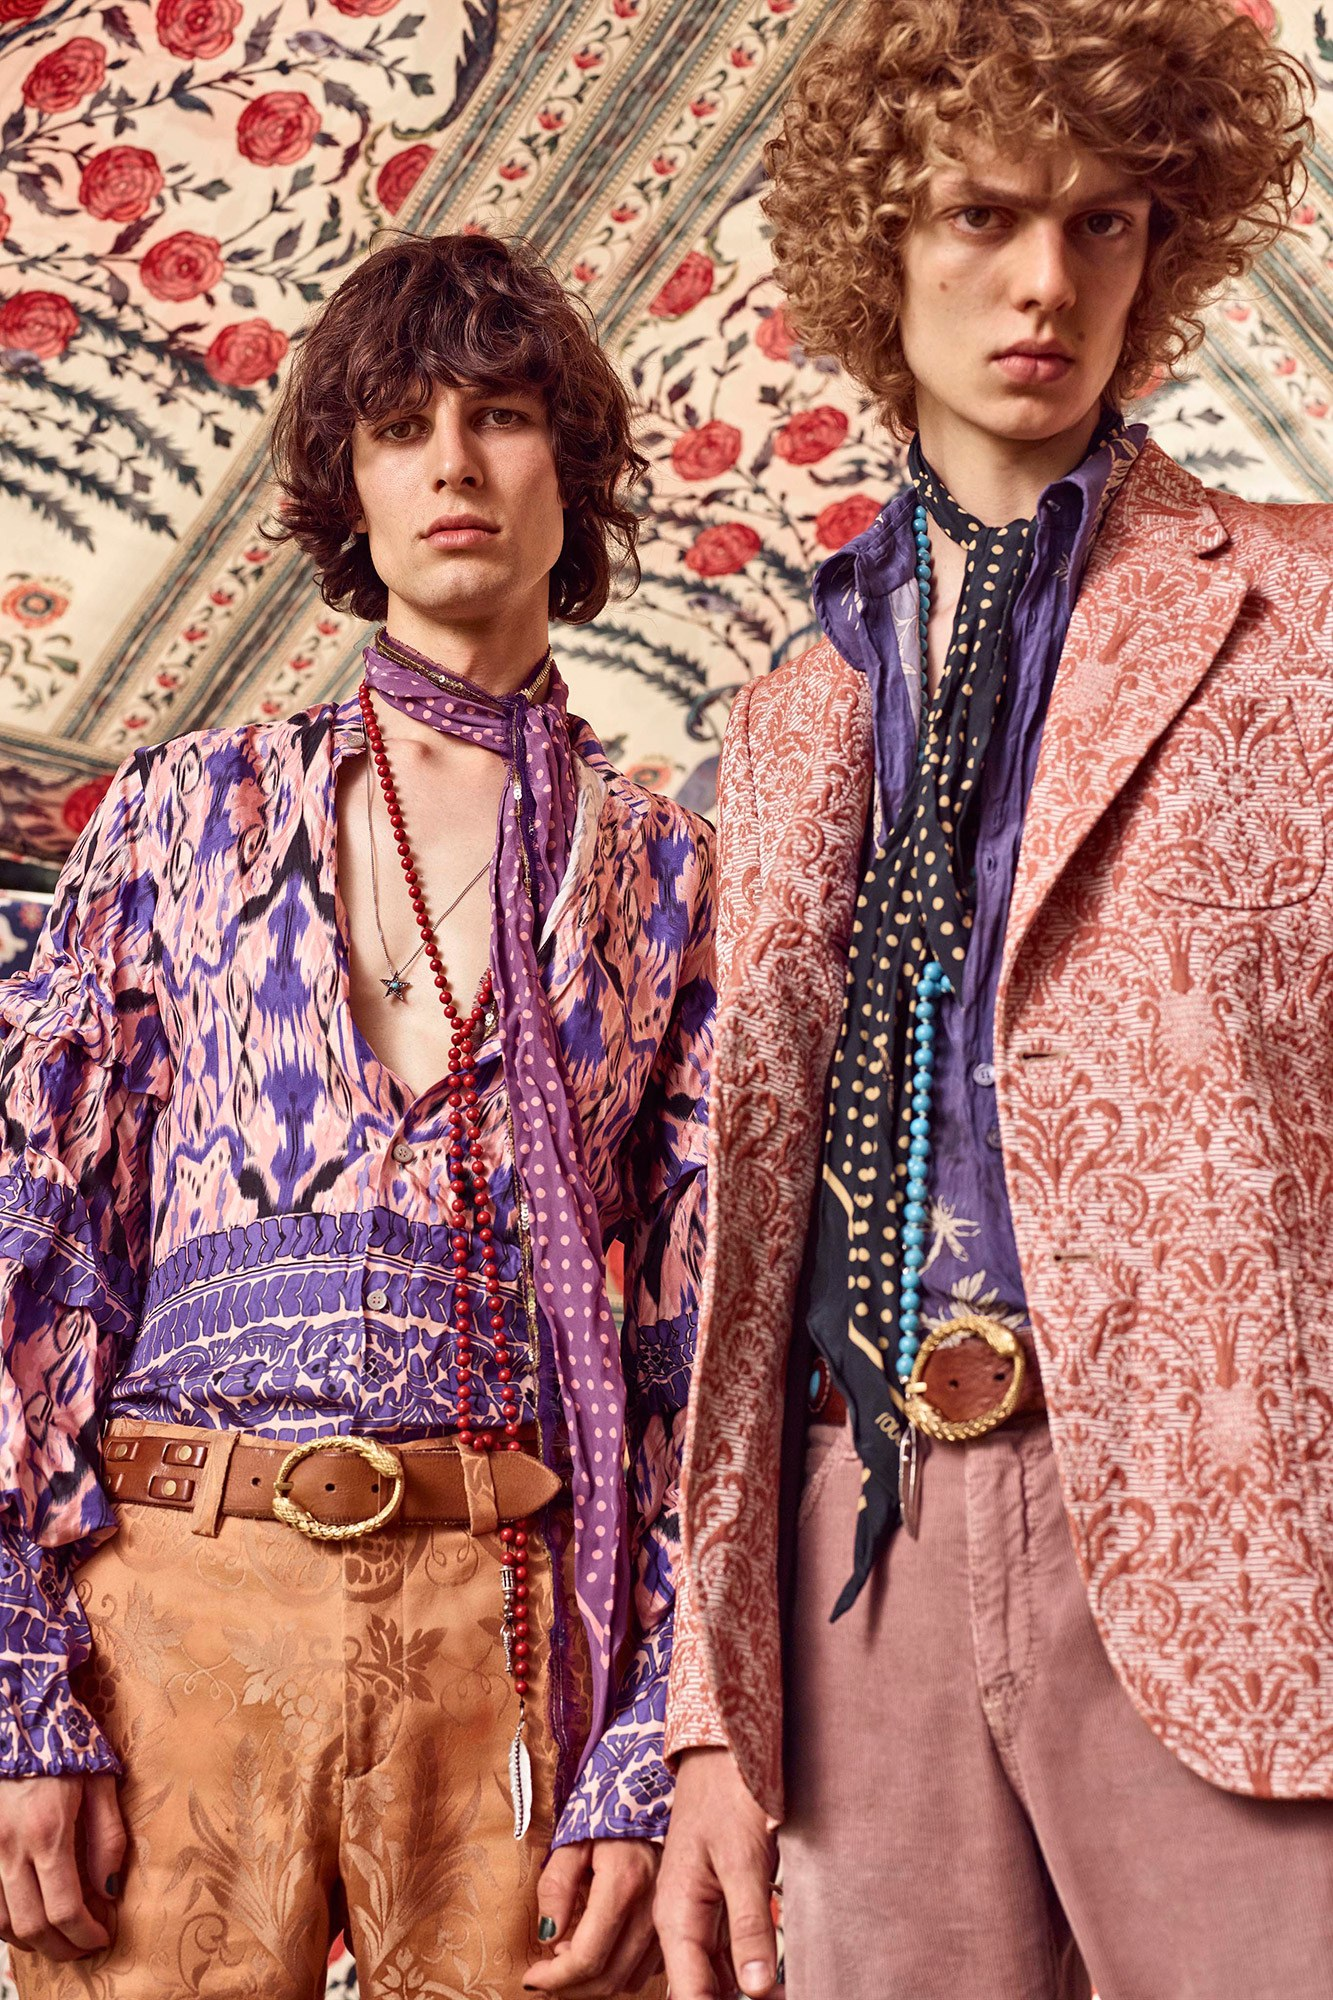 images/cast/20171000010000030=Resort 2017 COLOUR'S COMPANY fabrics x=Cavalli Uomo